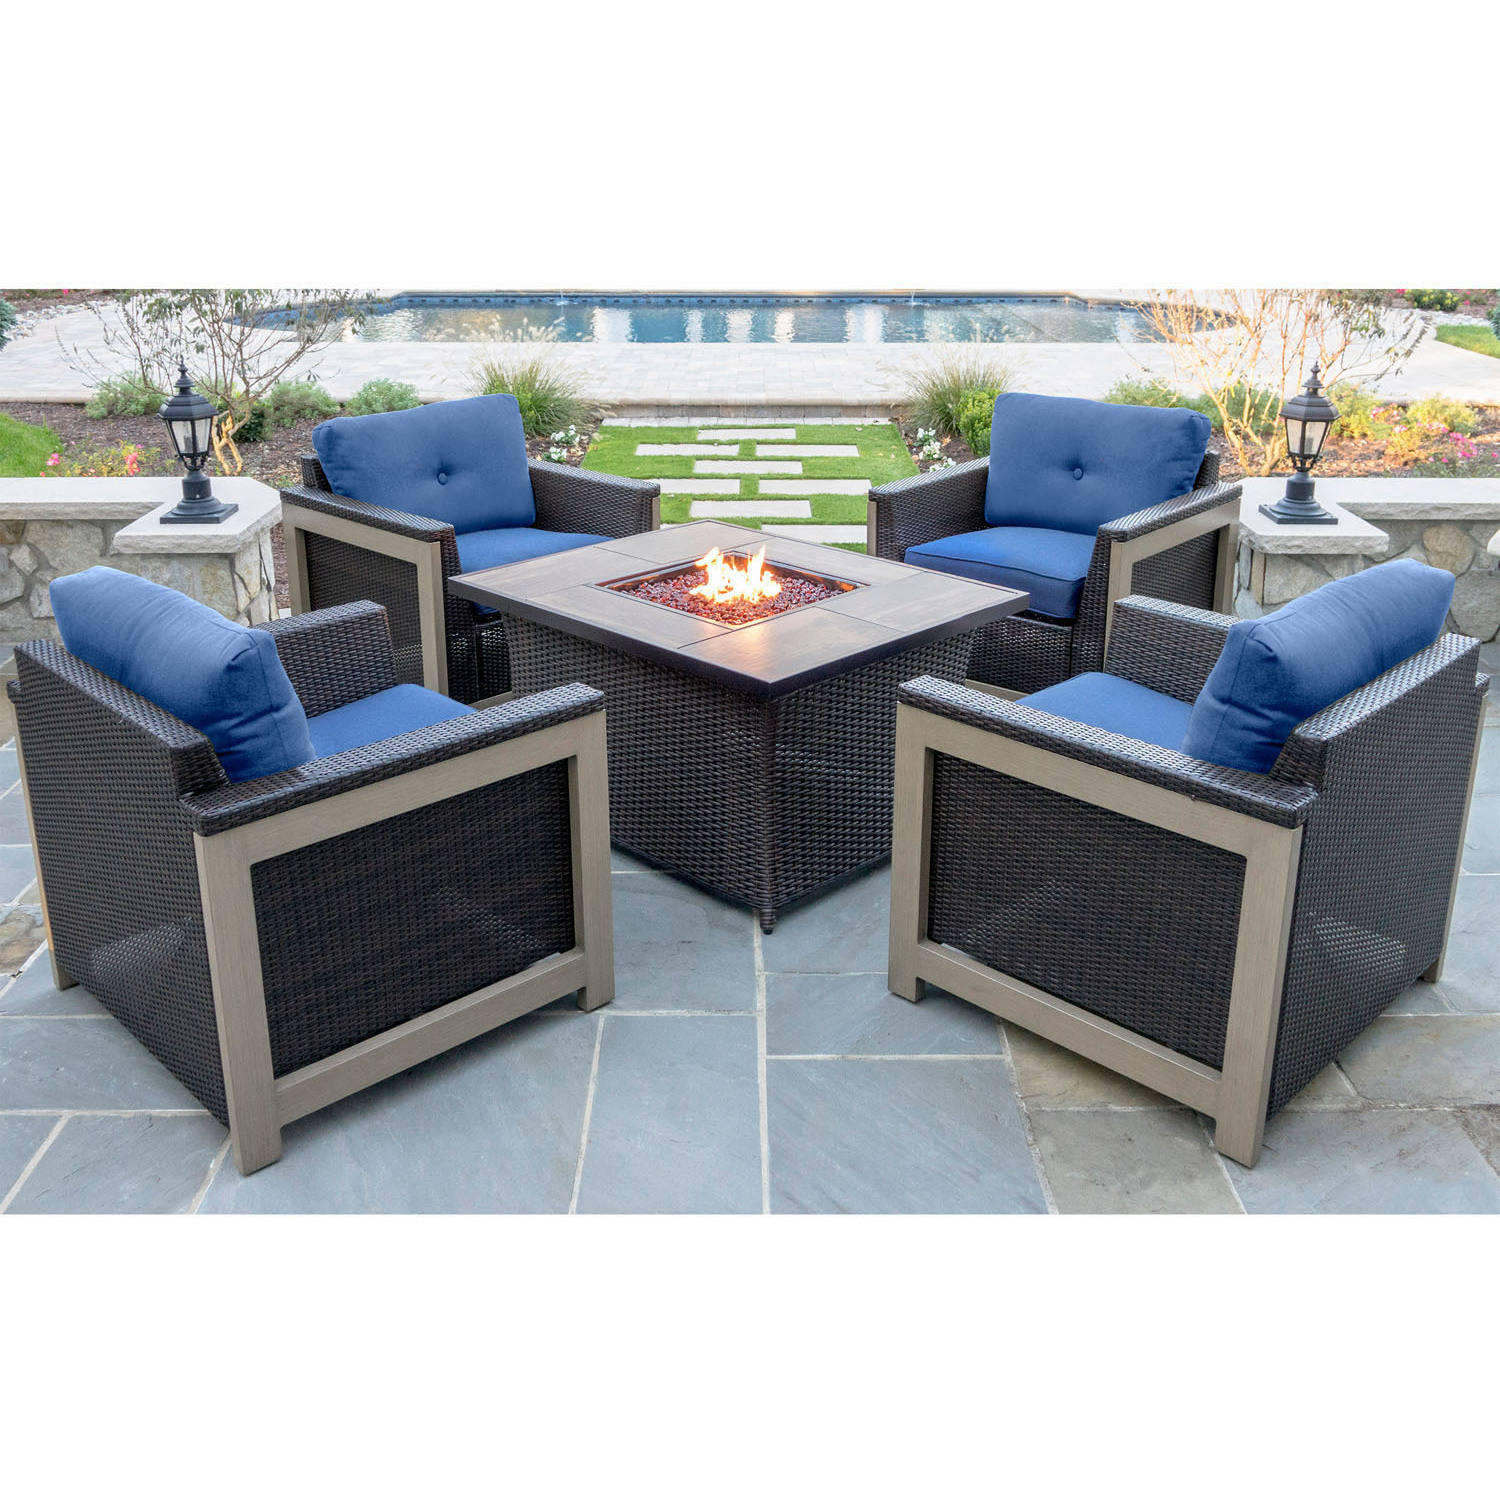 Hanover Outdoor Montana 5-Piece Woven Fire Pit Chat Set with Faux Woodgrain Tile Top